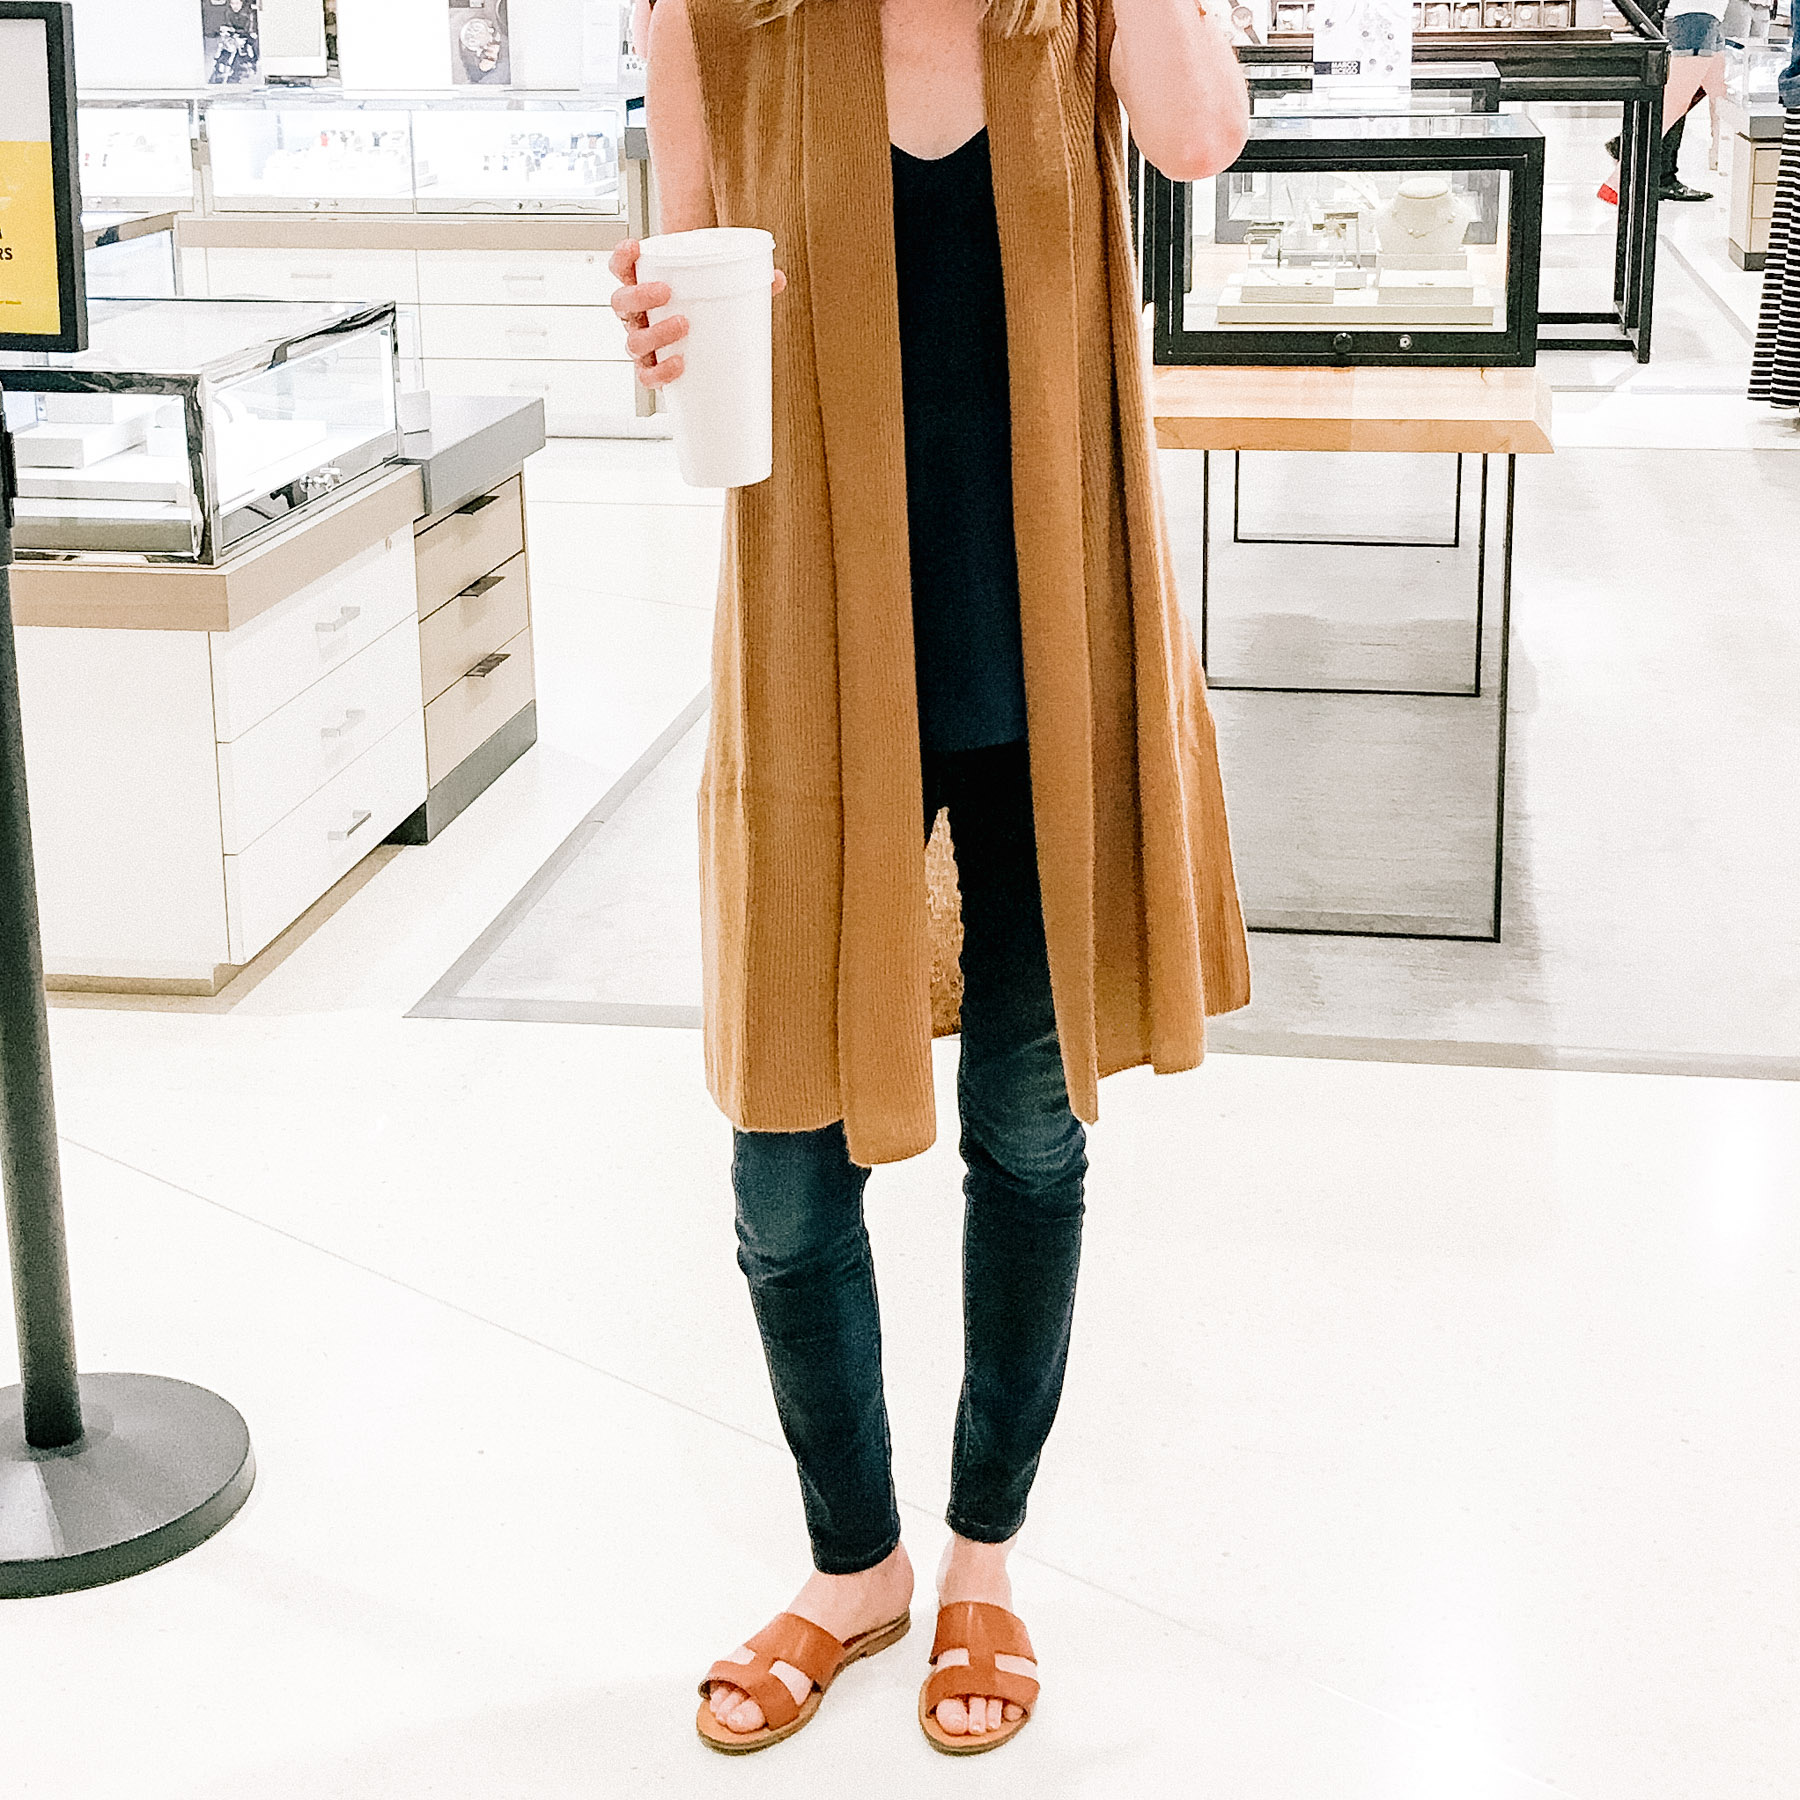 Cashmere Vest (Under $100!) / Hudson Skinny Jeans (But these Rag & Bone Skinny Jeans are VERY similar and part of the sale!) / J.Crew Camisole / Everlane Sandals (Here are the best brown sandals that are part of the sale, though!) / Tuckernuck Earrings